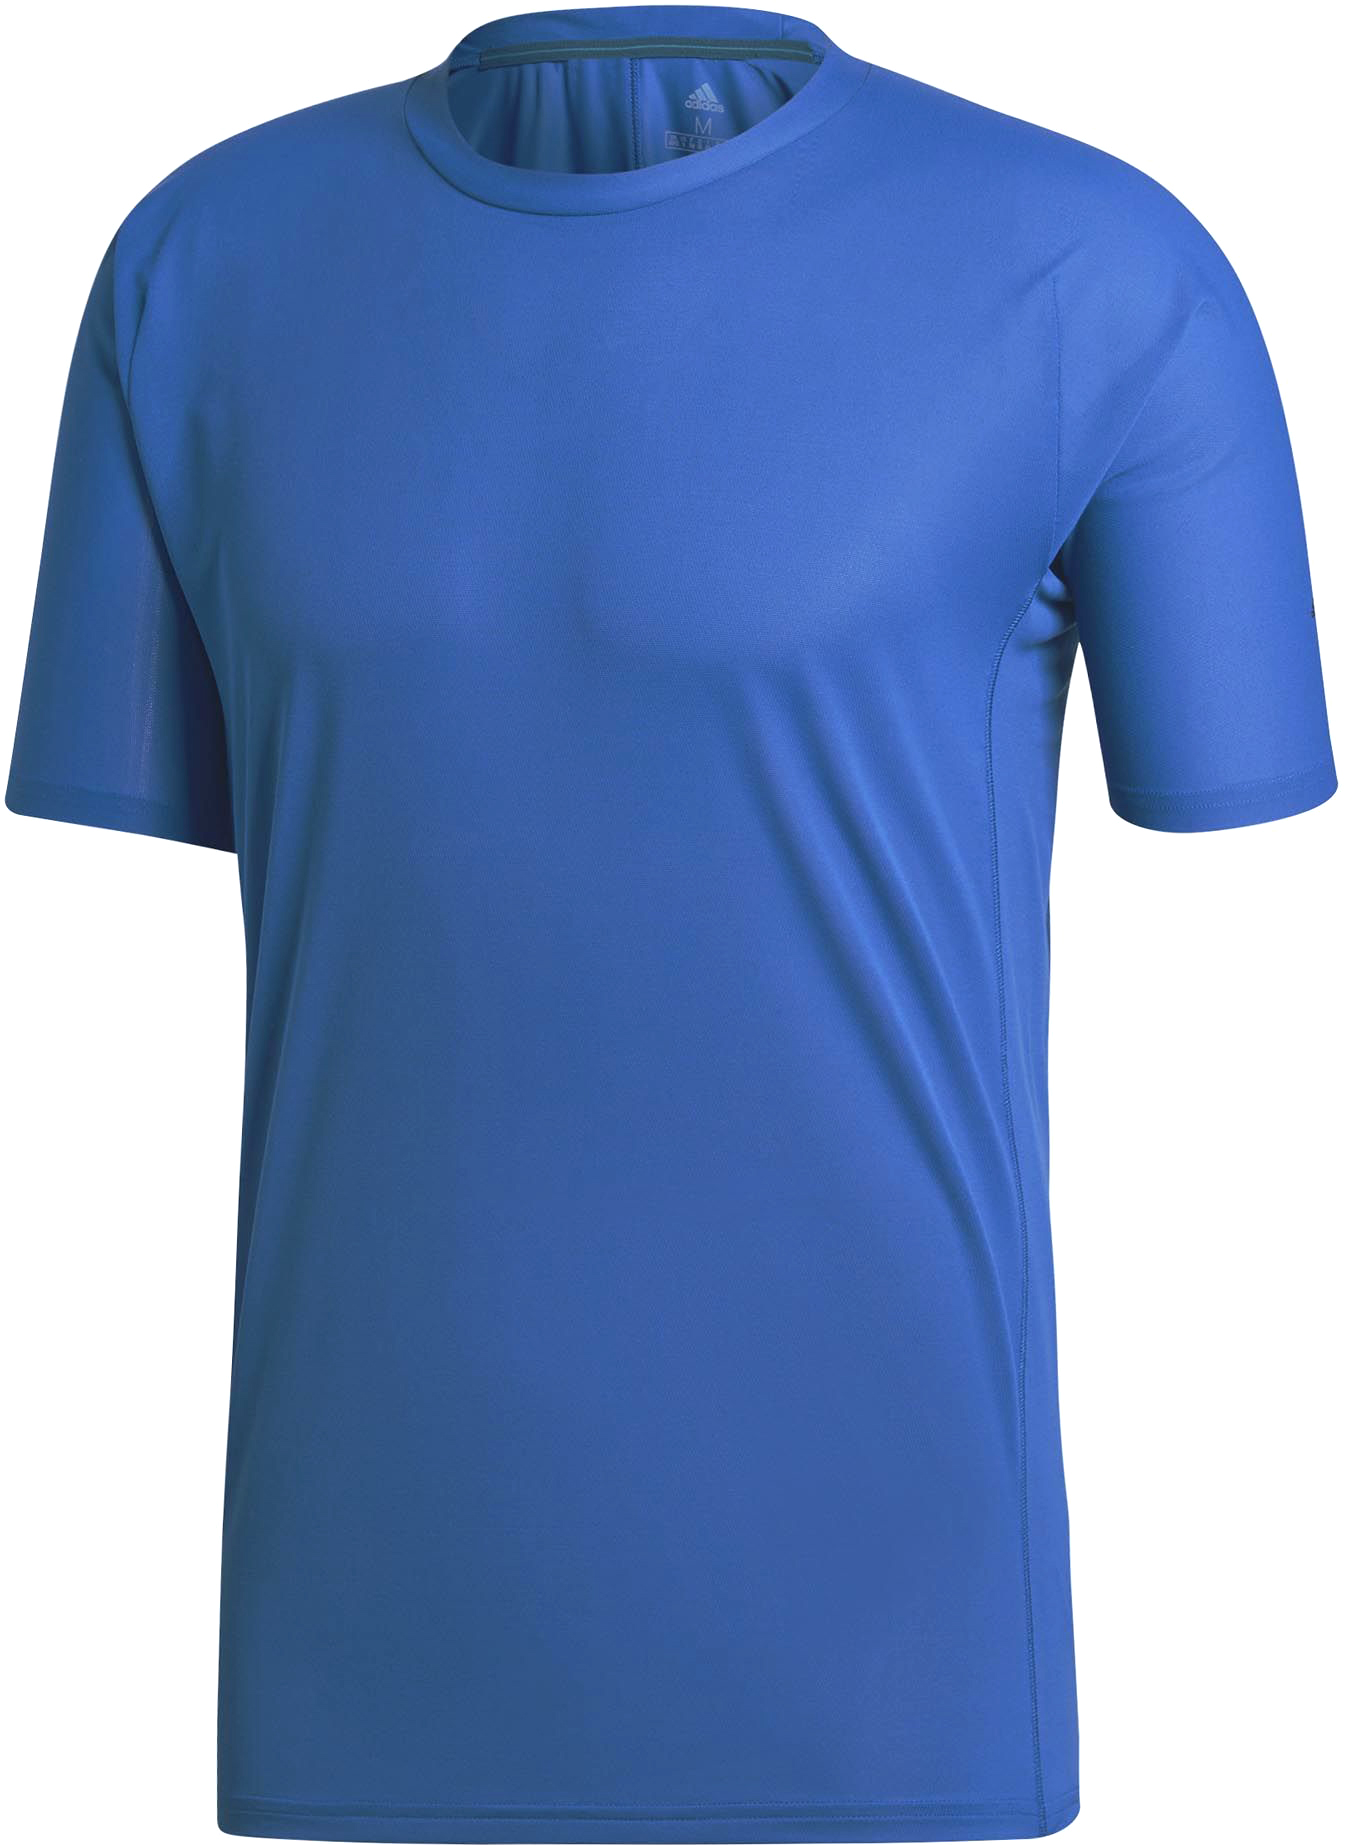 Adidas Outdoor Agravic Parley Tee Men's